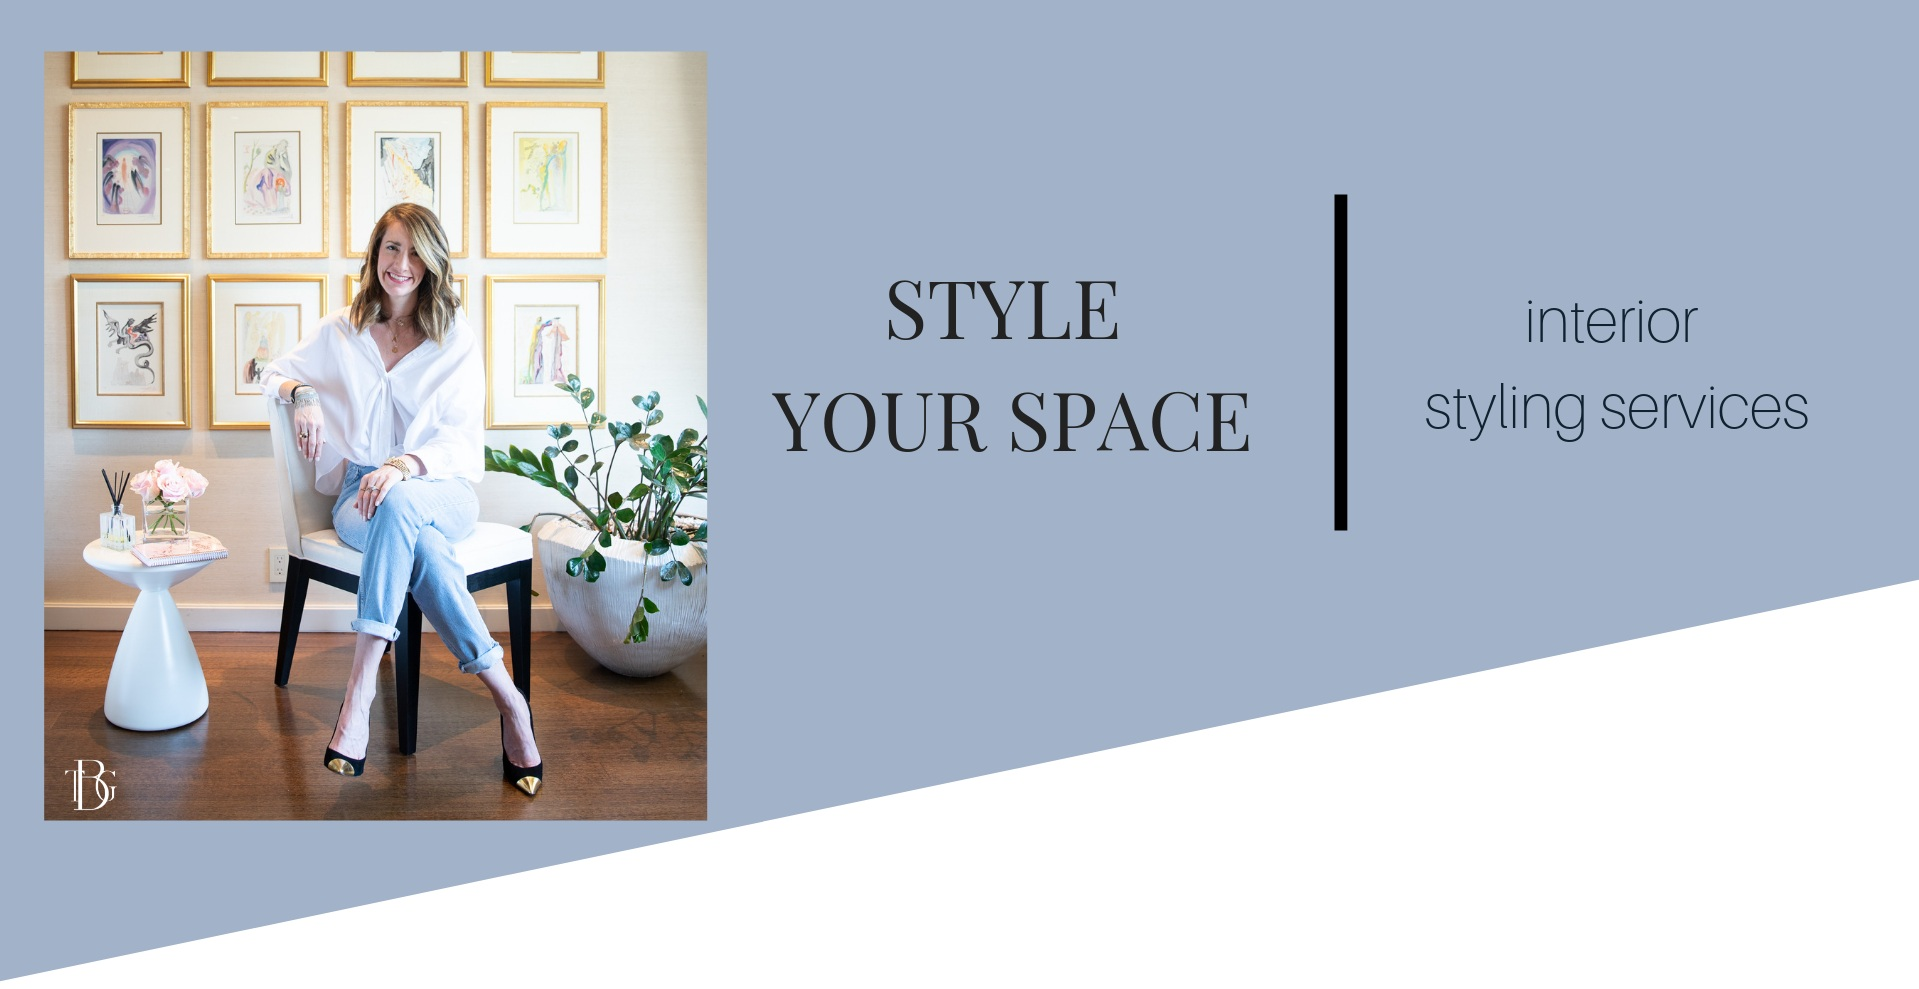 style-your-space-tbg-nyc-Lifestyle-Design.jpg